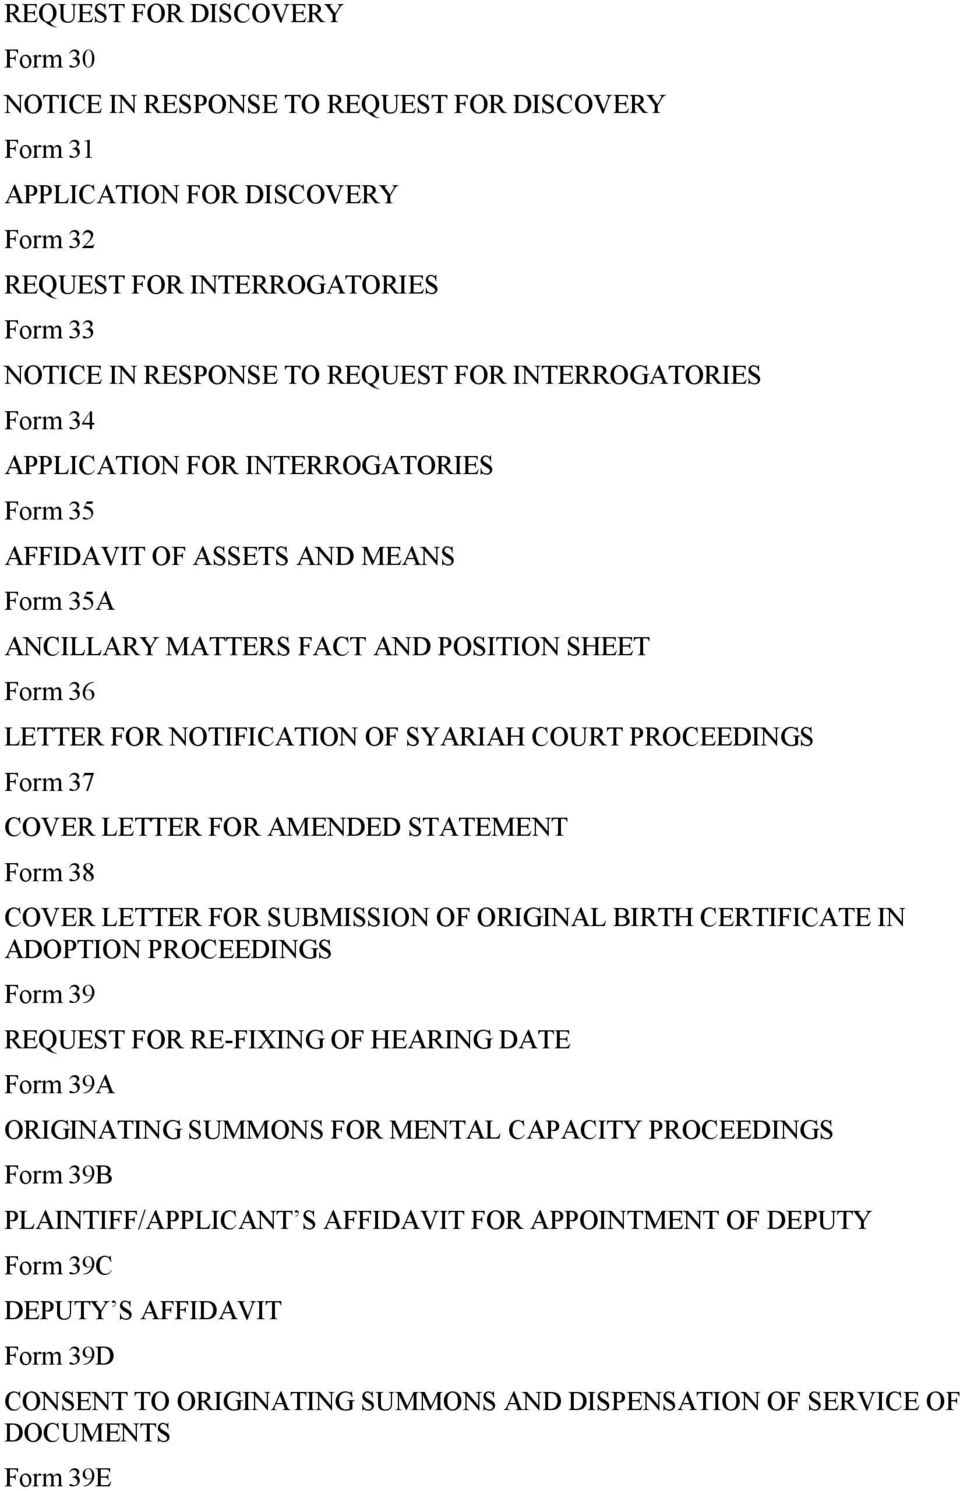 PROCEEDINGS Form 37 COVER LETTER FOR AMENDED STATEMENT Form 38 COVER LETTER FOR SUBMISSION OF ORIGINAL BIRTH CERTIFICATE IN ADOPTION PROCEEDINGS Form 39 REQUEST FOR RE-FIXING OF HEARING DATE Form 39A